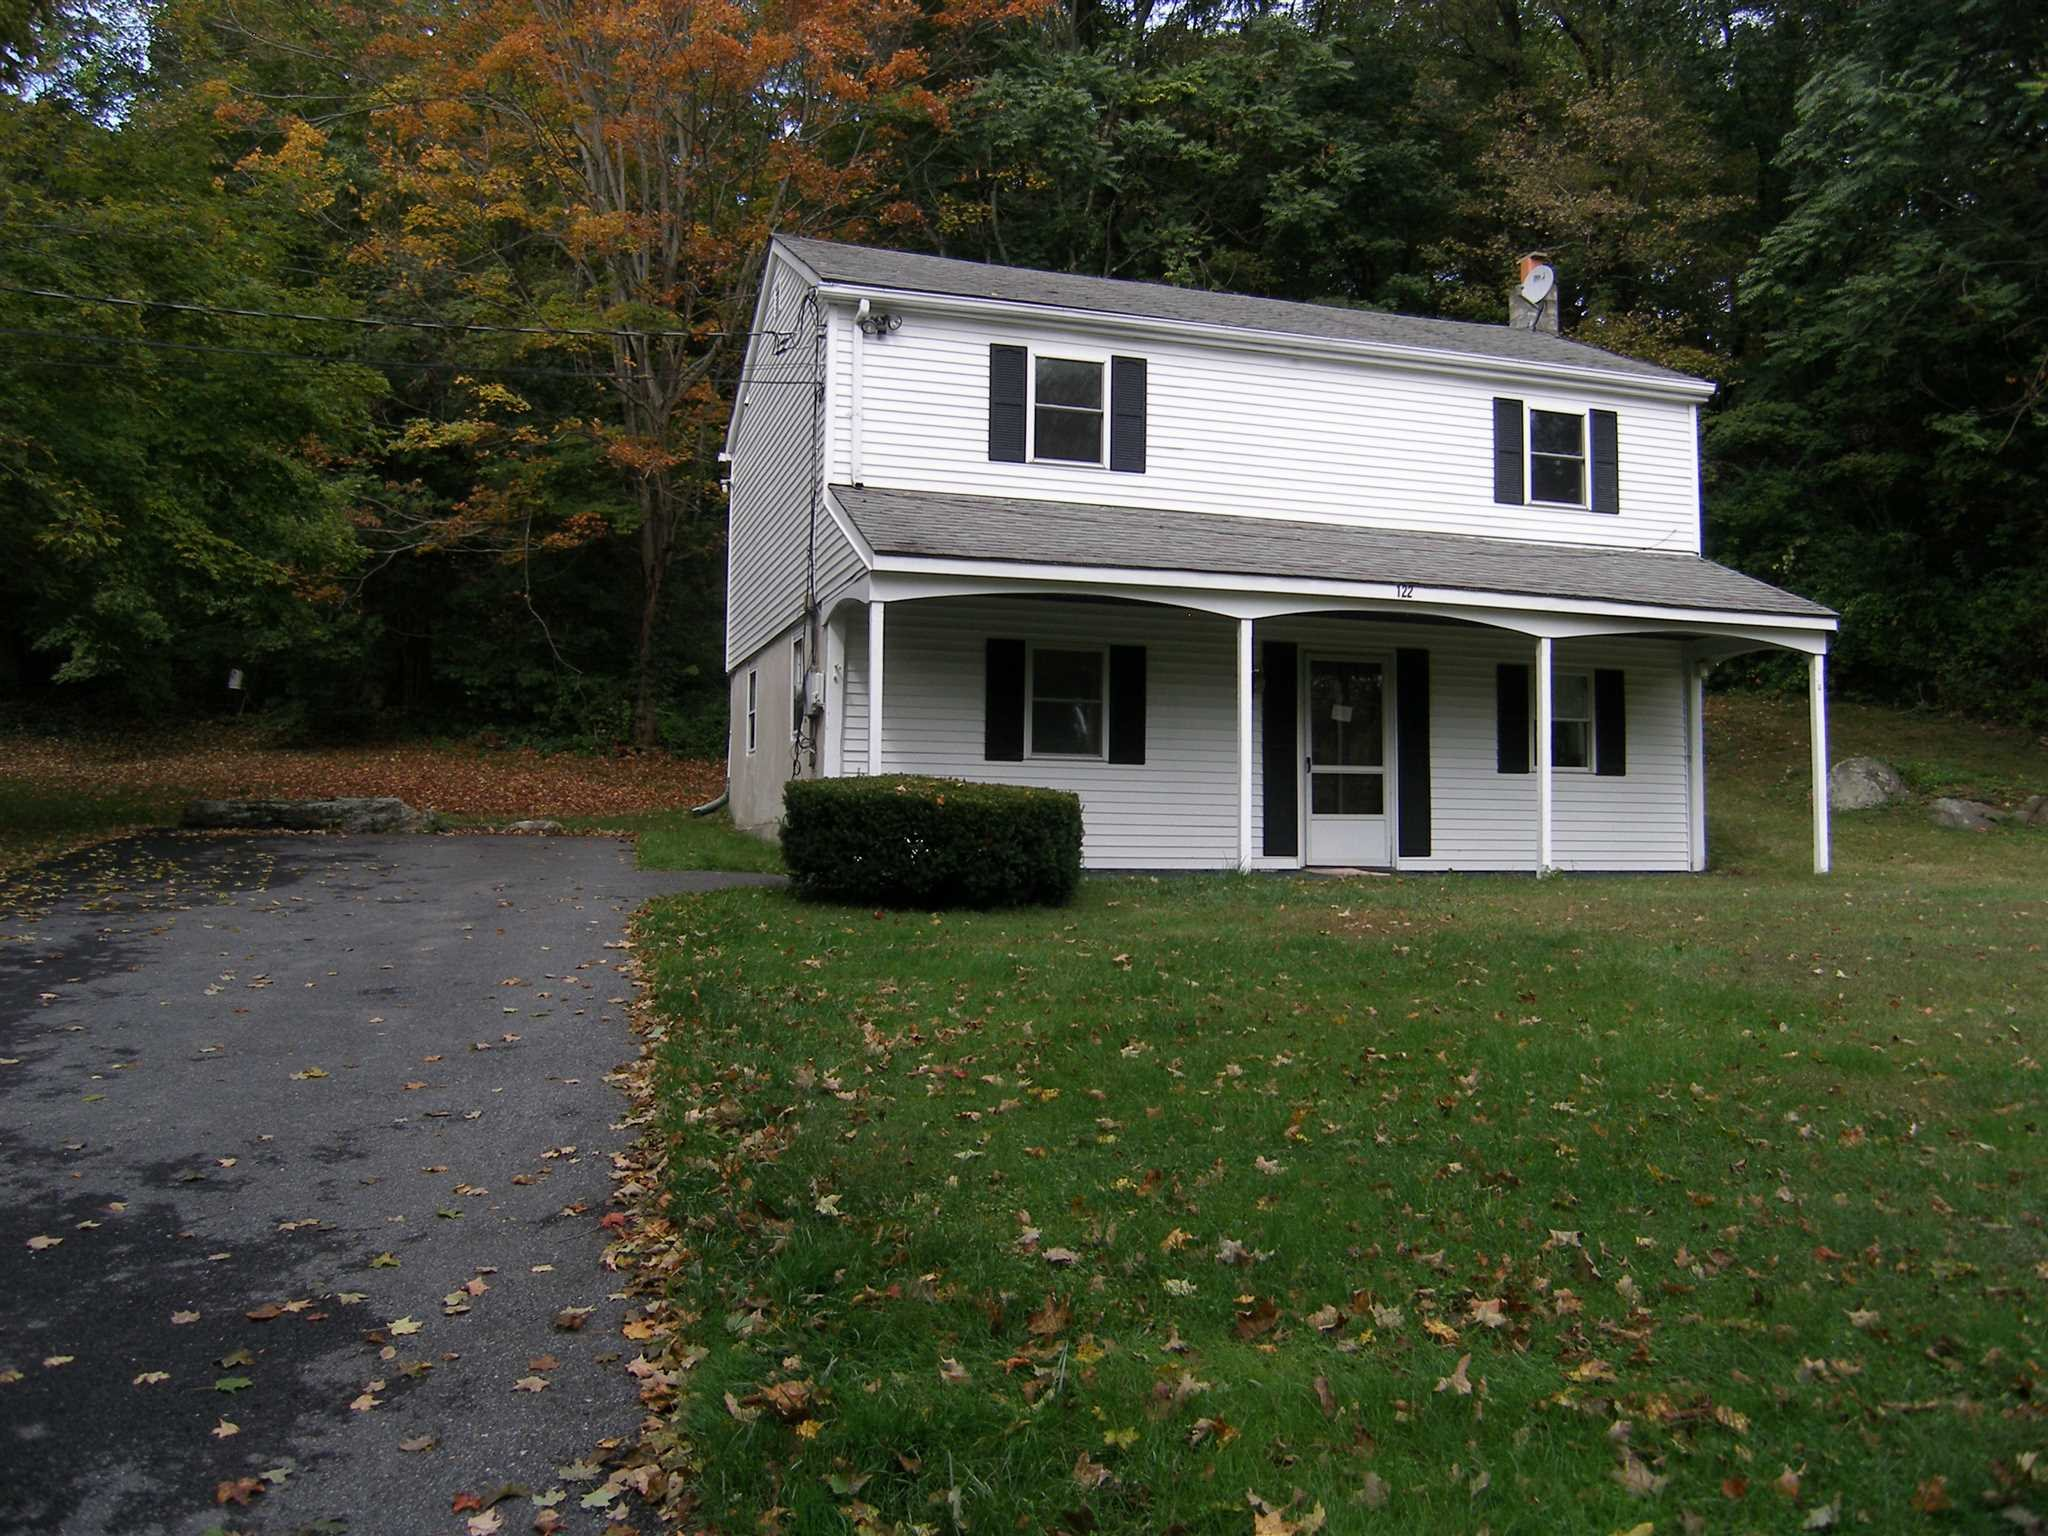 Single Family Home for Sale at 122 CUSHMAN Road 122 CUSHMAN Road Pawling, New York 12564 United States